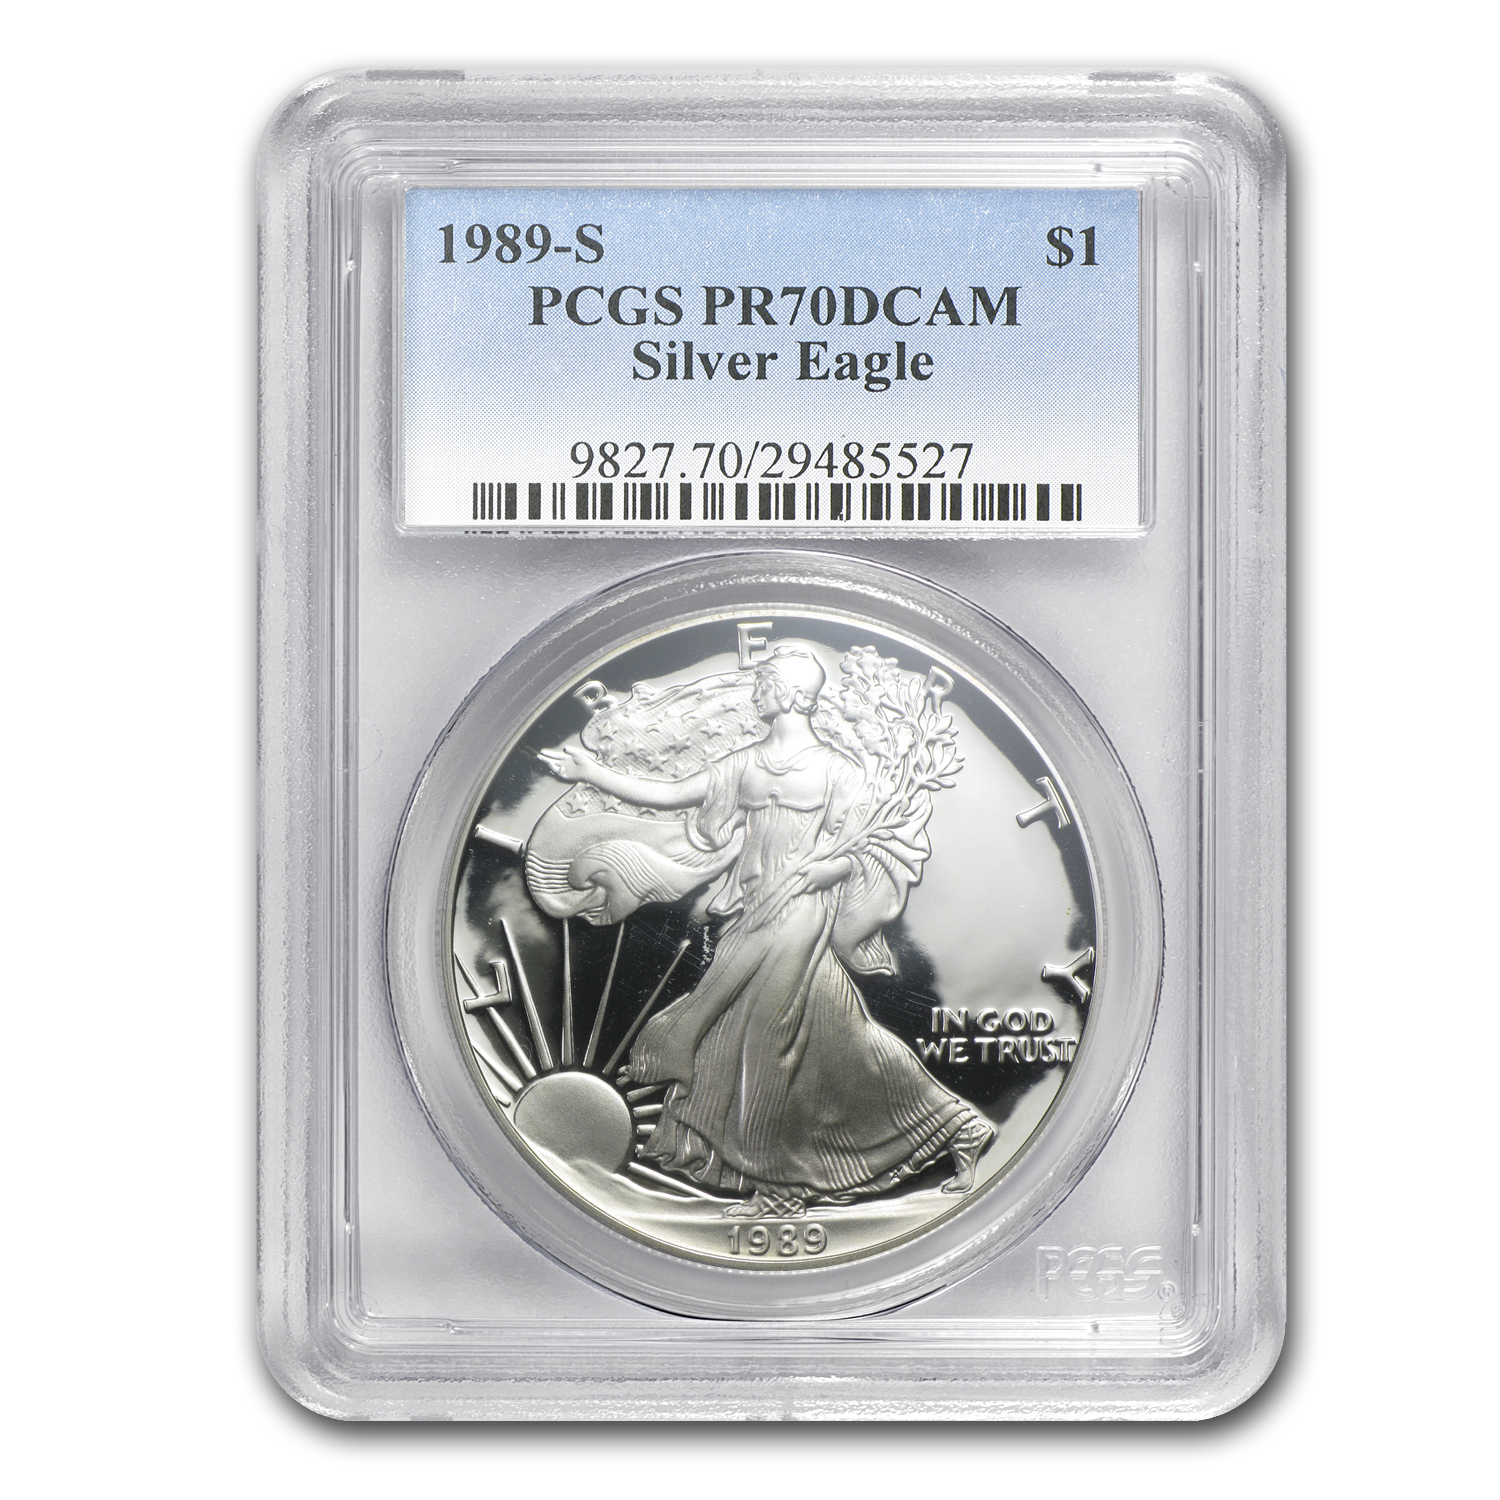 1989-S Proof Silver American Eagle PR-70 PCGS (Registry Set)